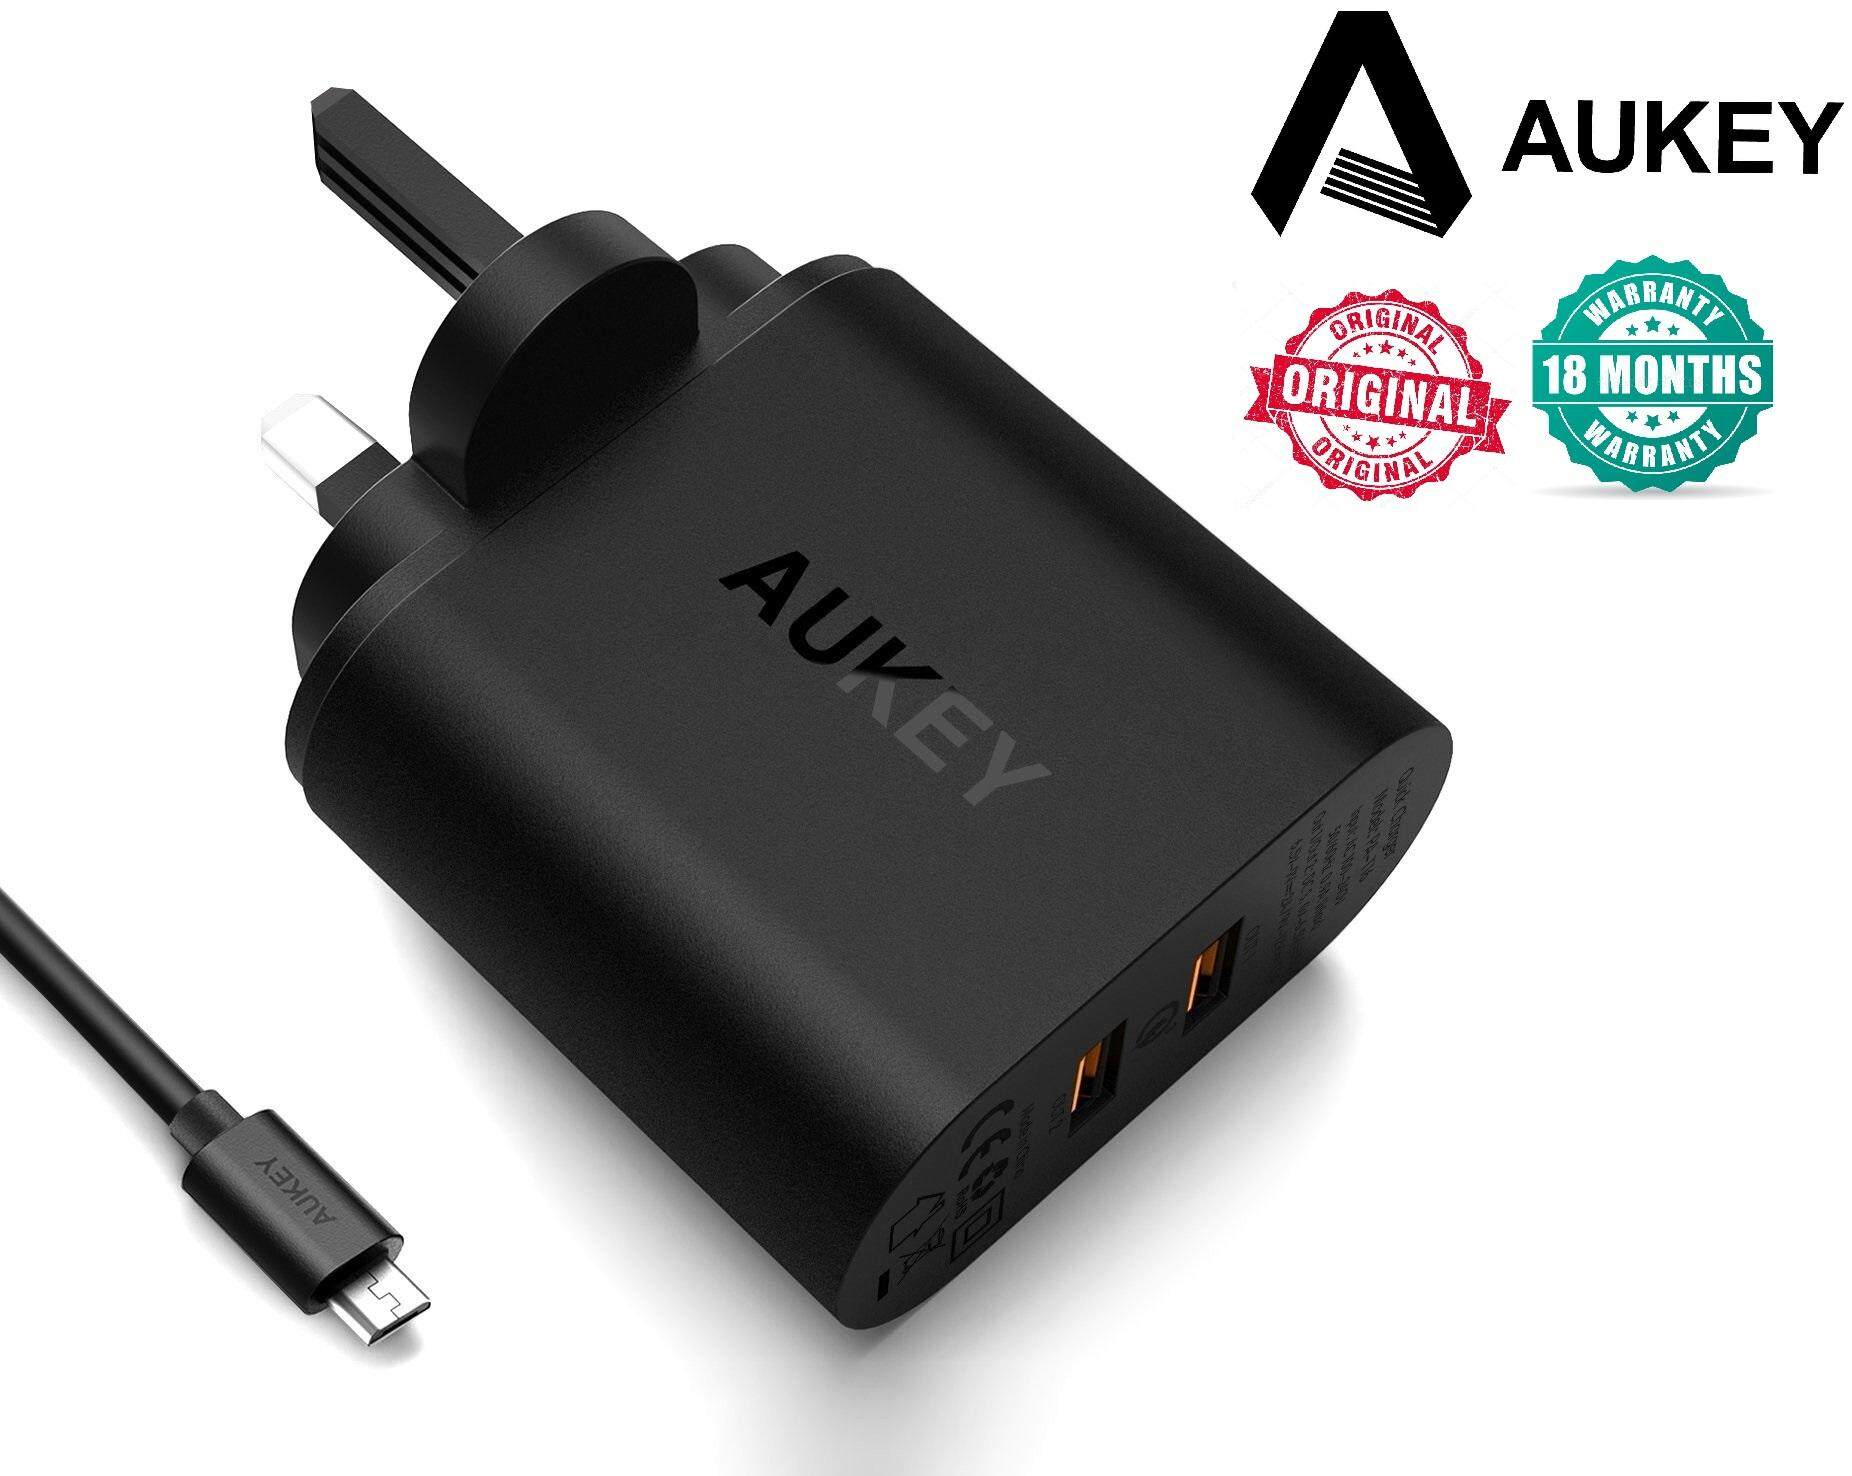 Aukey PA-T16 3Pin Dual USB Certified Qualcomm Quick Charge 3.0 Charger (3Pin) (18 MONTHS WARRANTY)